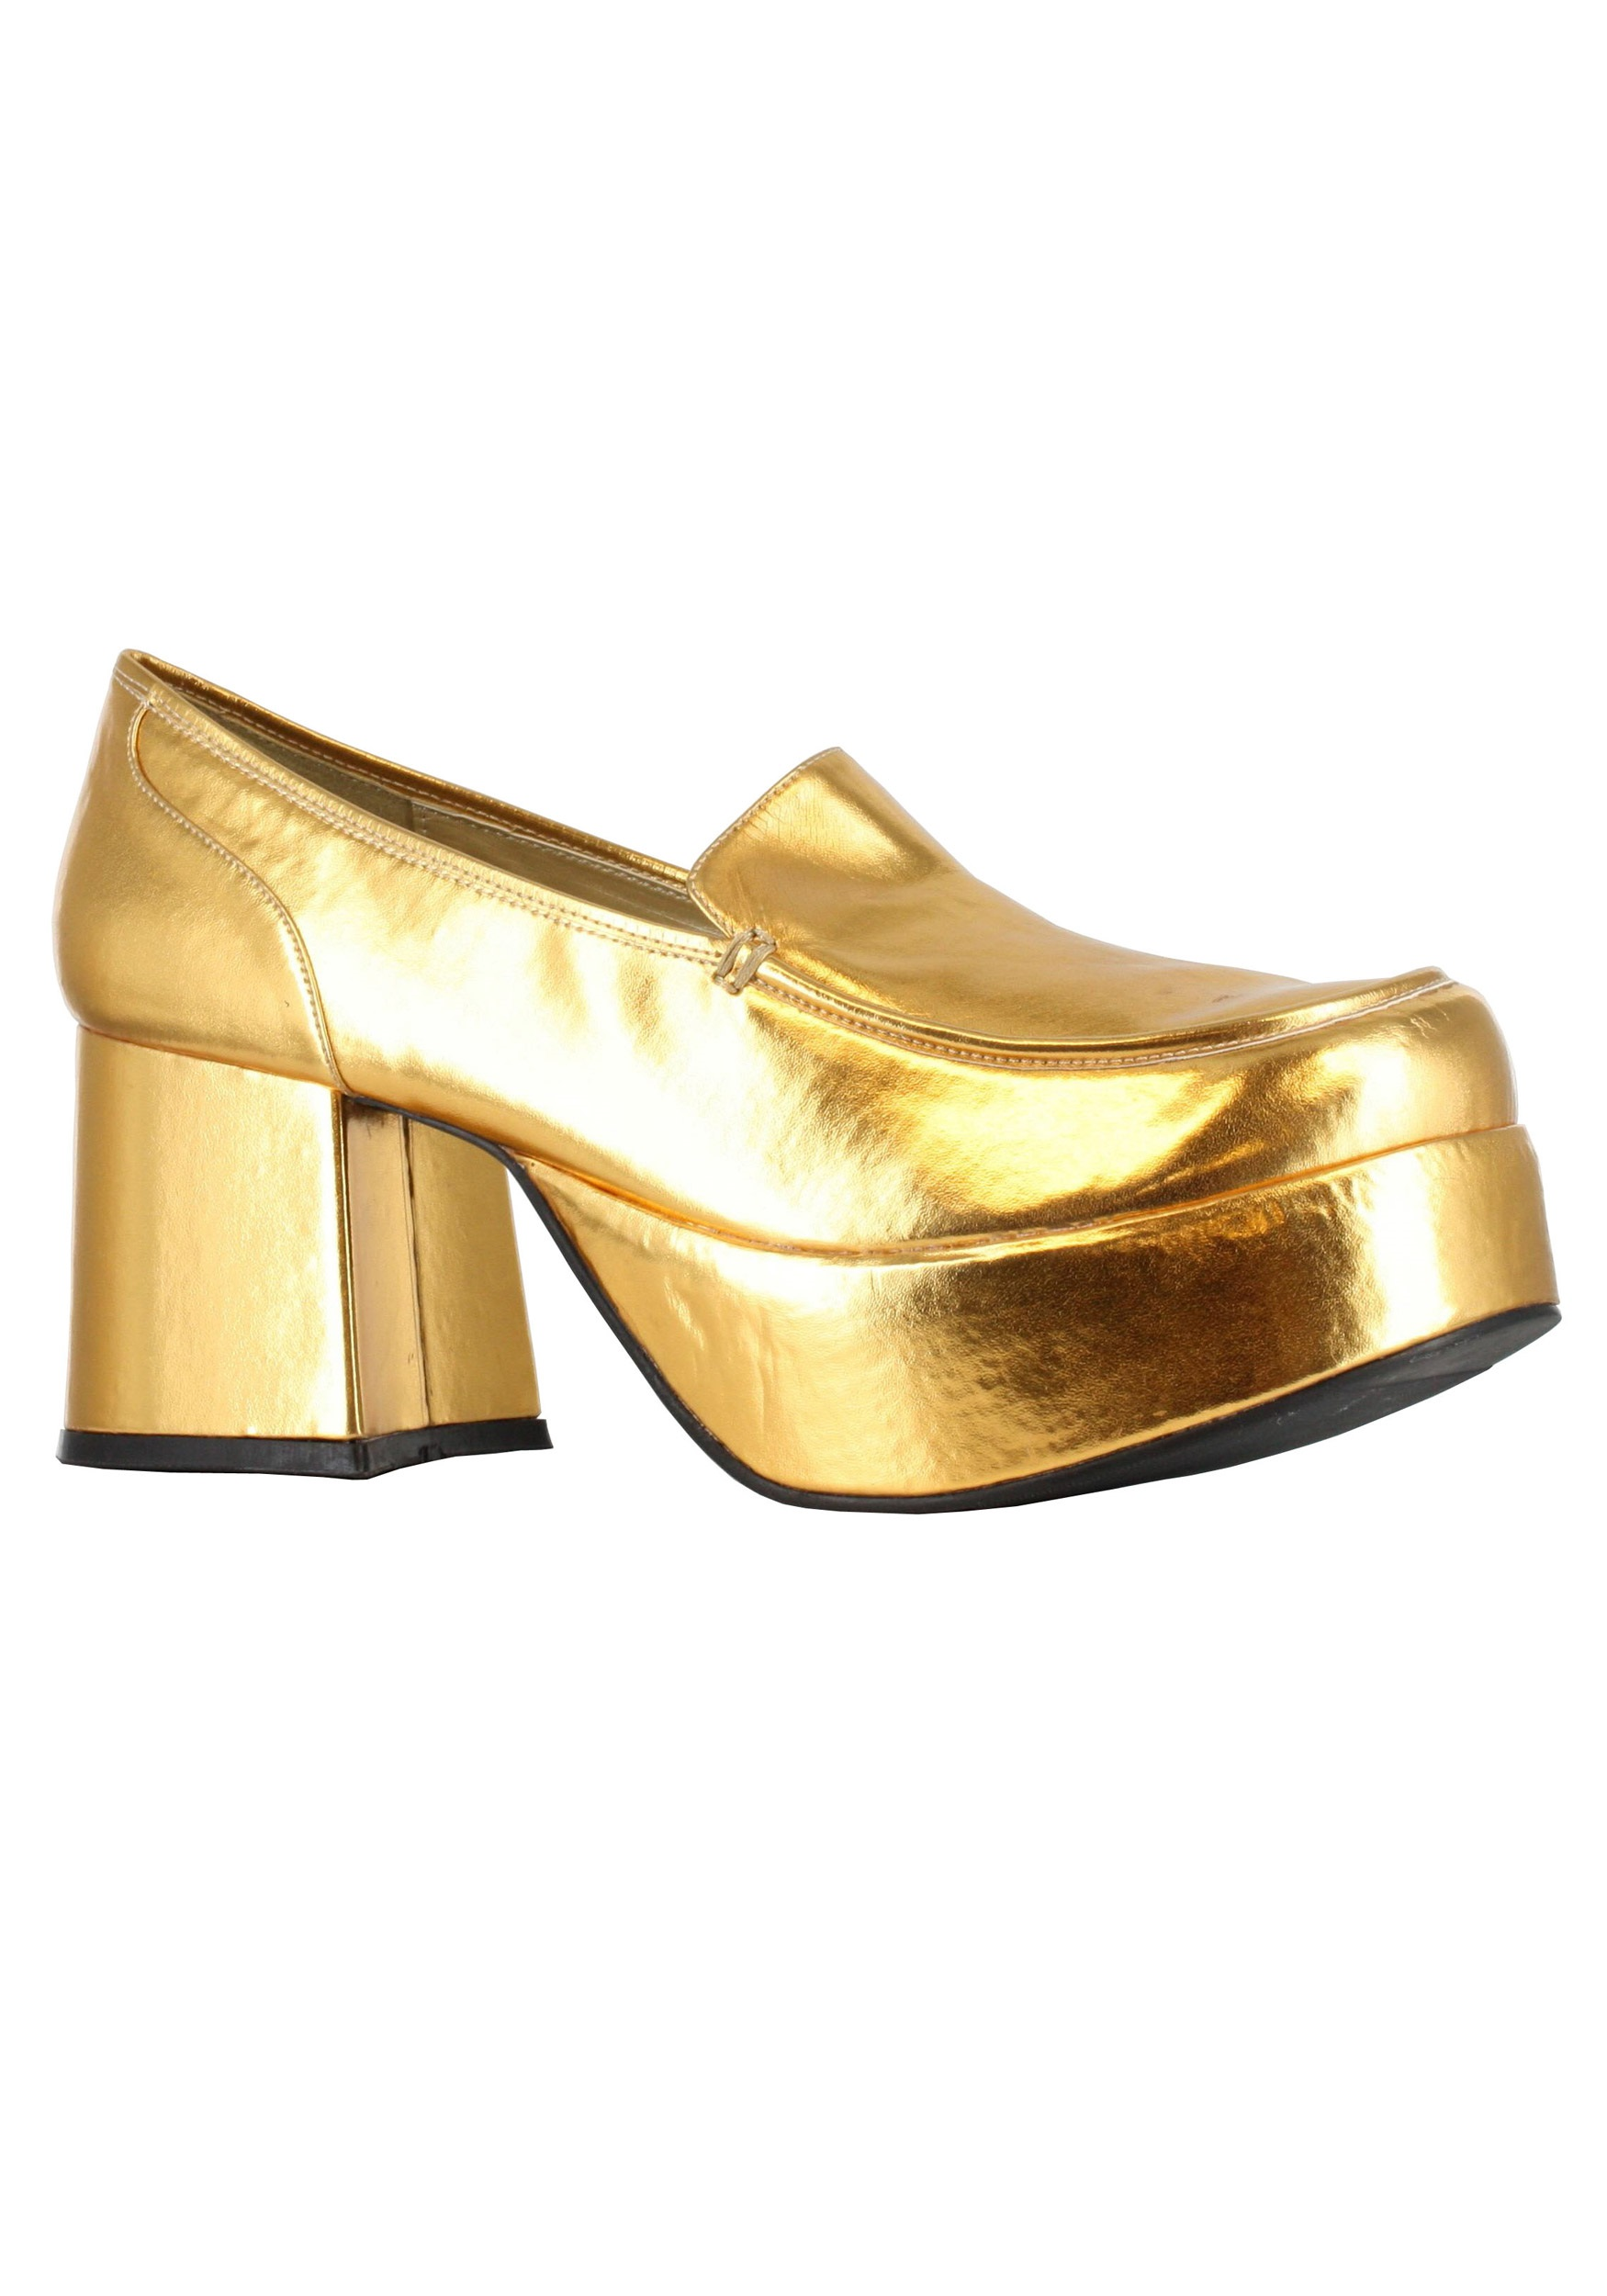 Gold Shoes For Baby Boy